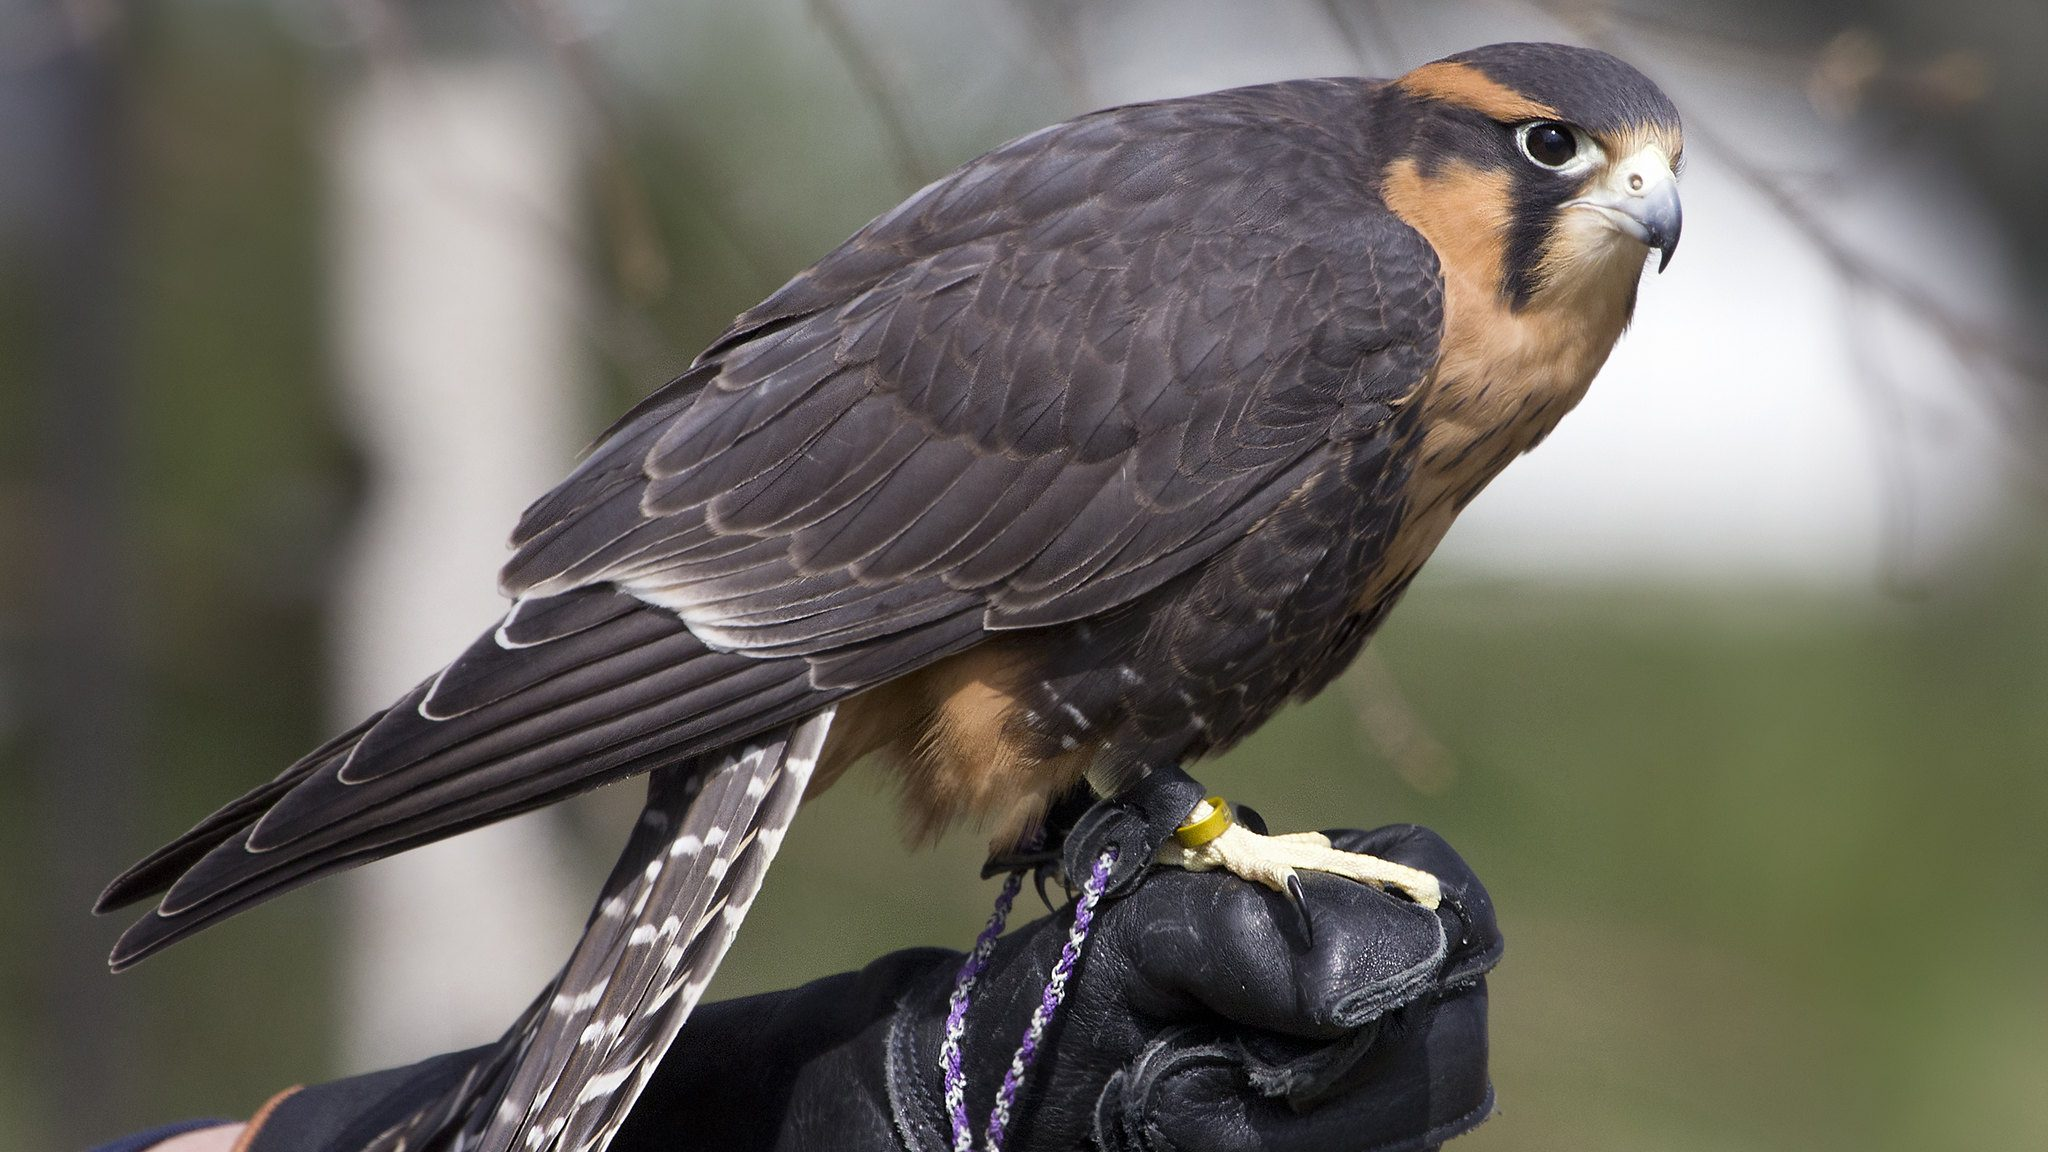 Image: Falcon sitting on a gloved hand